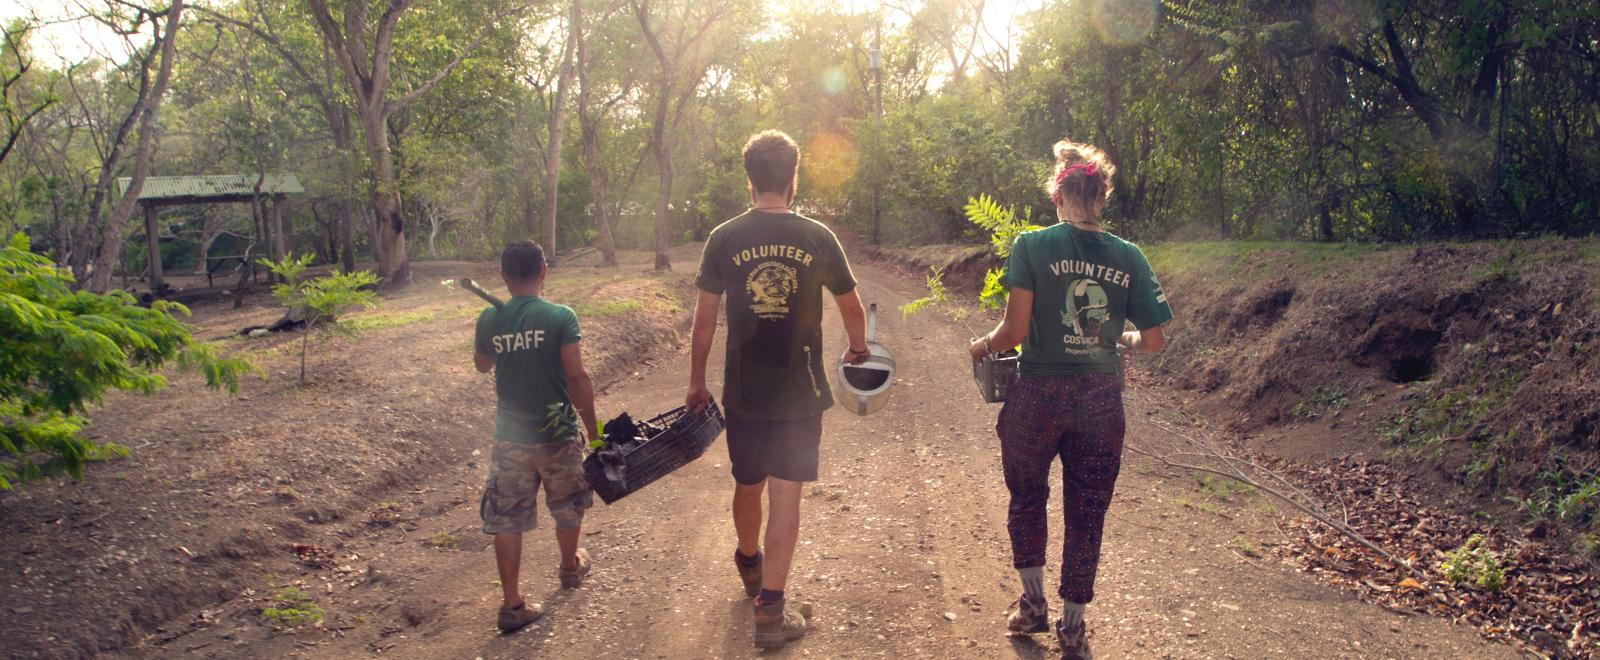 Projects Abroad staff and volunteers carry trees after planting saplings in Costa Rica